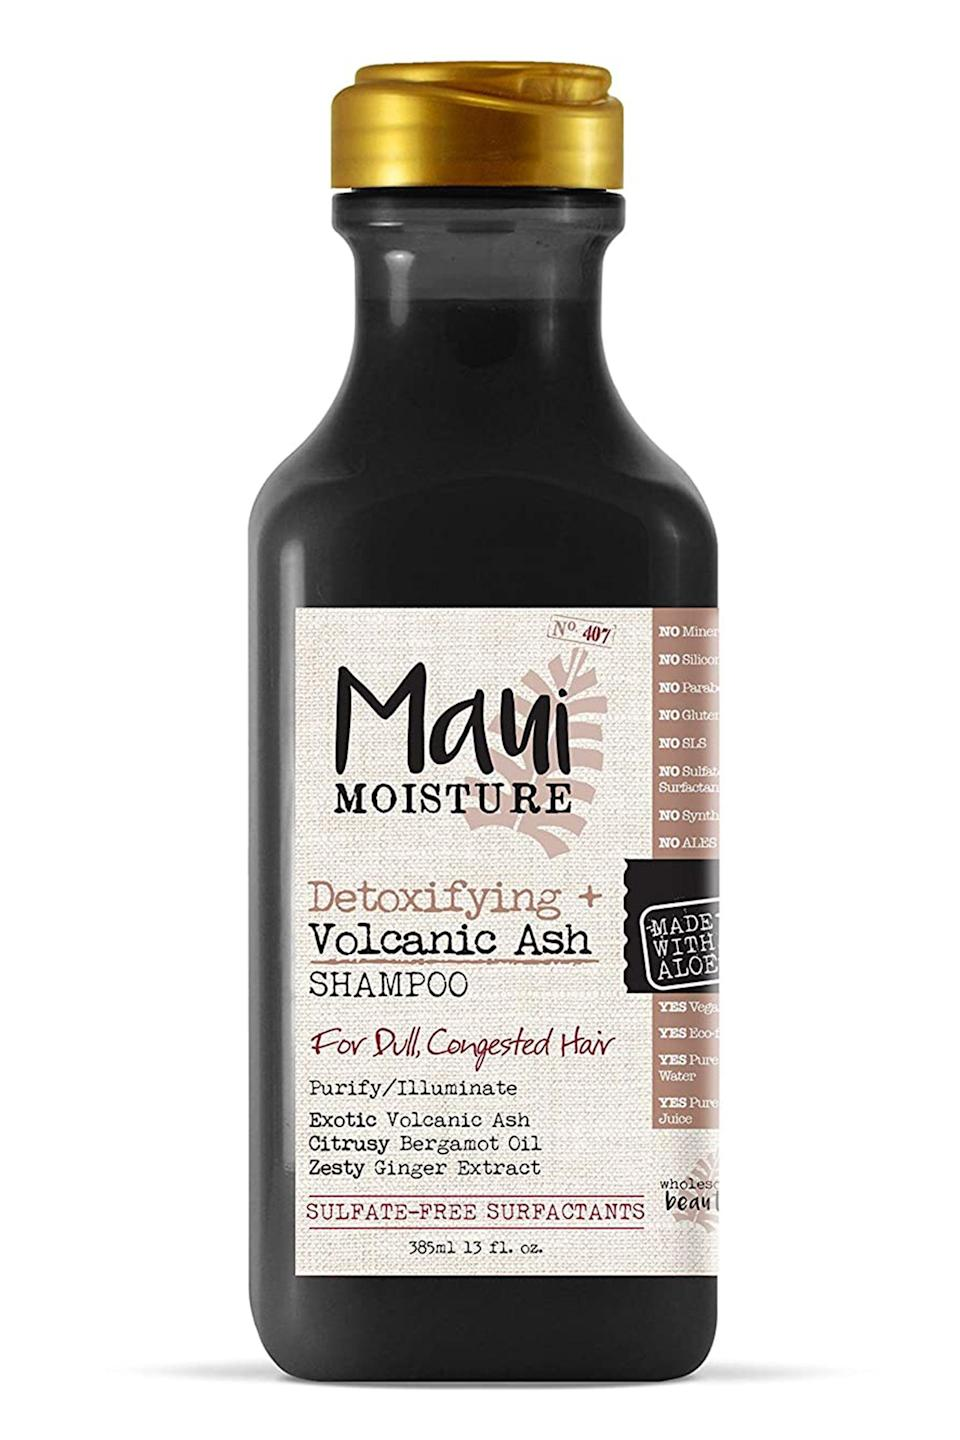 "<p><strong>Maui Moisture</strong></p><p>amazon.com</p><p><strong>$8.99</strong></p><p><a href=""https://www.amazon.com/dp/B07GQNZ9LS?tag=syn-yahoo-20&ascsubtag=%5Bartid%7C10058.g.25647514%5Bsrc%7Cyahoo-us"" rel=""nofollow noopener"" target=""_blank"" data-ylk=""slk:SHOP IT"" class=""link rapid-noclick-resp"">SHOP IT</a></p><p>Celebrity stylist <a href=""https://www.instagram.com/nikkinelms/"" rel=""nofollow noopener"" target=""_blank"" data-ylk=""slk:Nikki Nelms"" class=""link rapid-noclick-resp"">Nikki Nelms</a>, who works with Zoë Kravitz, Janelle Monae, Yara Shahidi, and more, is a fan of this drugstore gem for a good reason. Nelms is also a huge proponent of a healthy, hydrated scalp for optimal hair growth. ""Use a shampoo like Maui Moisture's Detoxifying + Volcanic Ash Shampoo because <strong>it has essential ingredients like ginger extract and aloe, which refresh the scalp and add hydration so that your hair will grow to its healthiest potential.</strong> It's also important to be gentle with your hair throughout this journey and use tools like <a href=""https://www.allure.com/story/goody-nikki-nelms-total-texture-planet-goody-collections"" rel=""nofollow noopener"" target=""_blank"" data-ylk=""slk:Goody Total Texture detangling paddle brush"" class=""link rapid-noclick-resp"">Goody Total Texture detangling paddle brush</a> infused with mongongo oil to prevent excessive shedding.</p>"